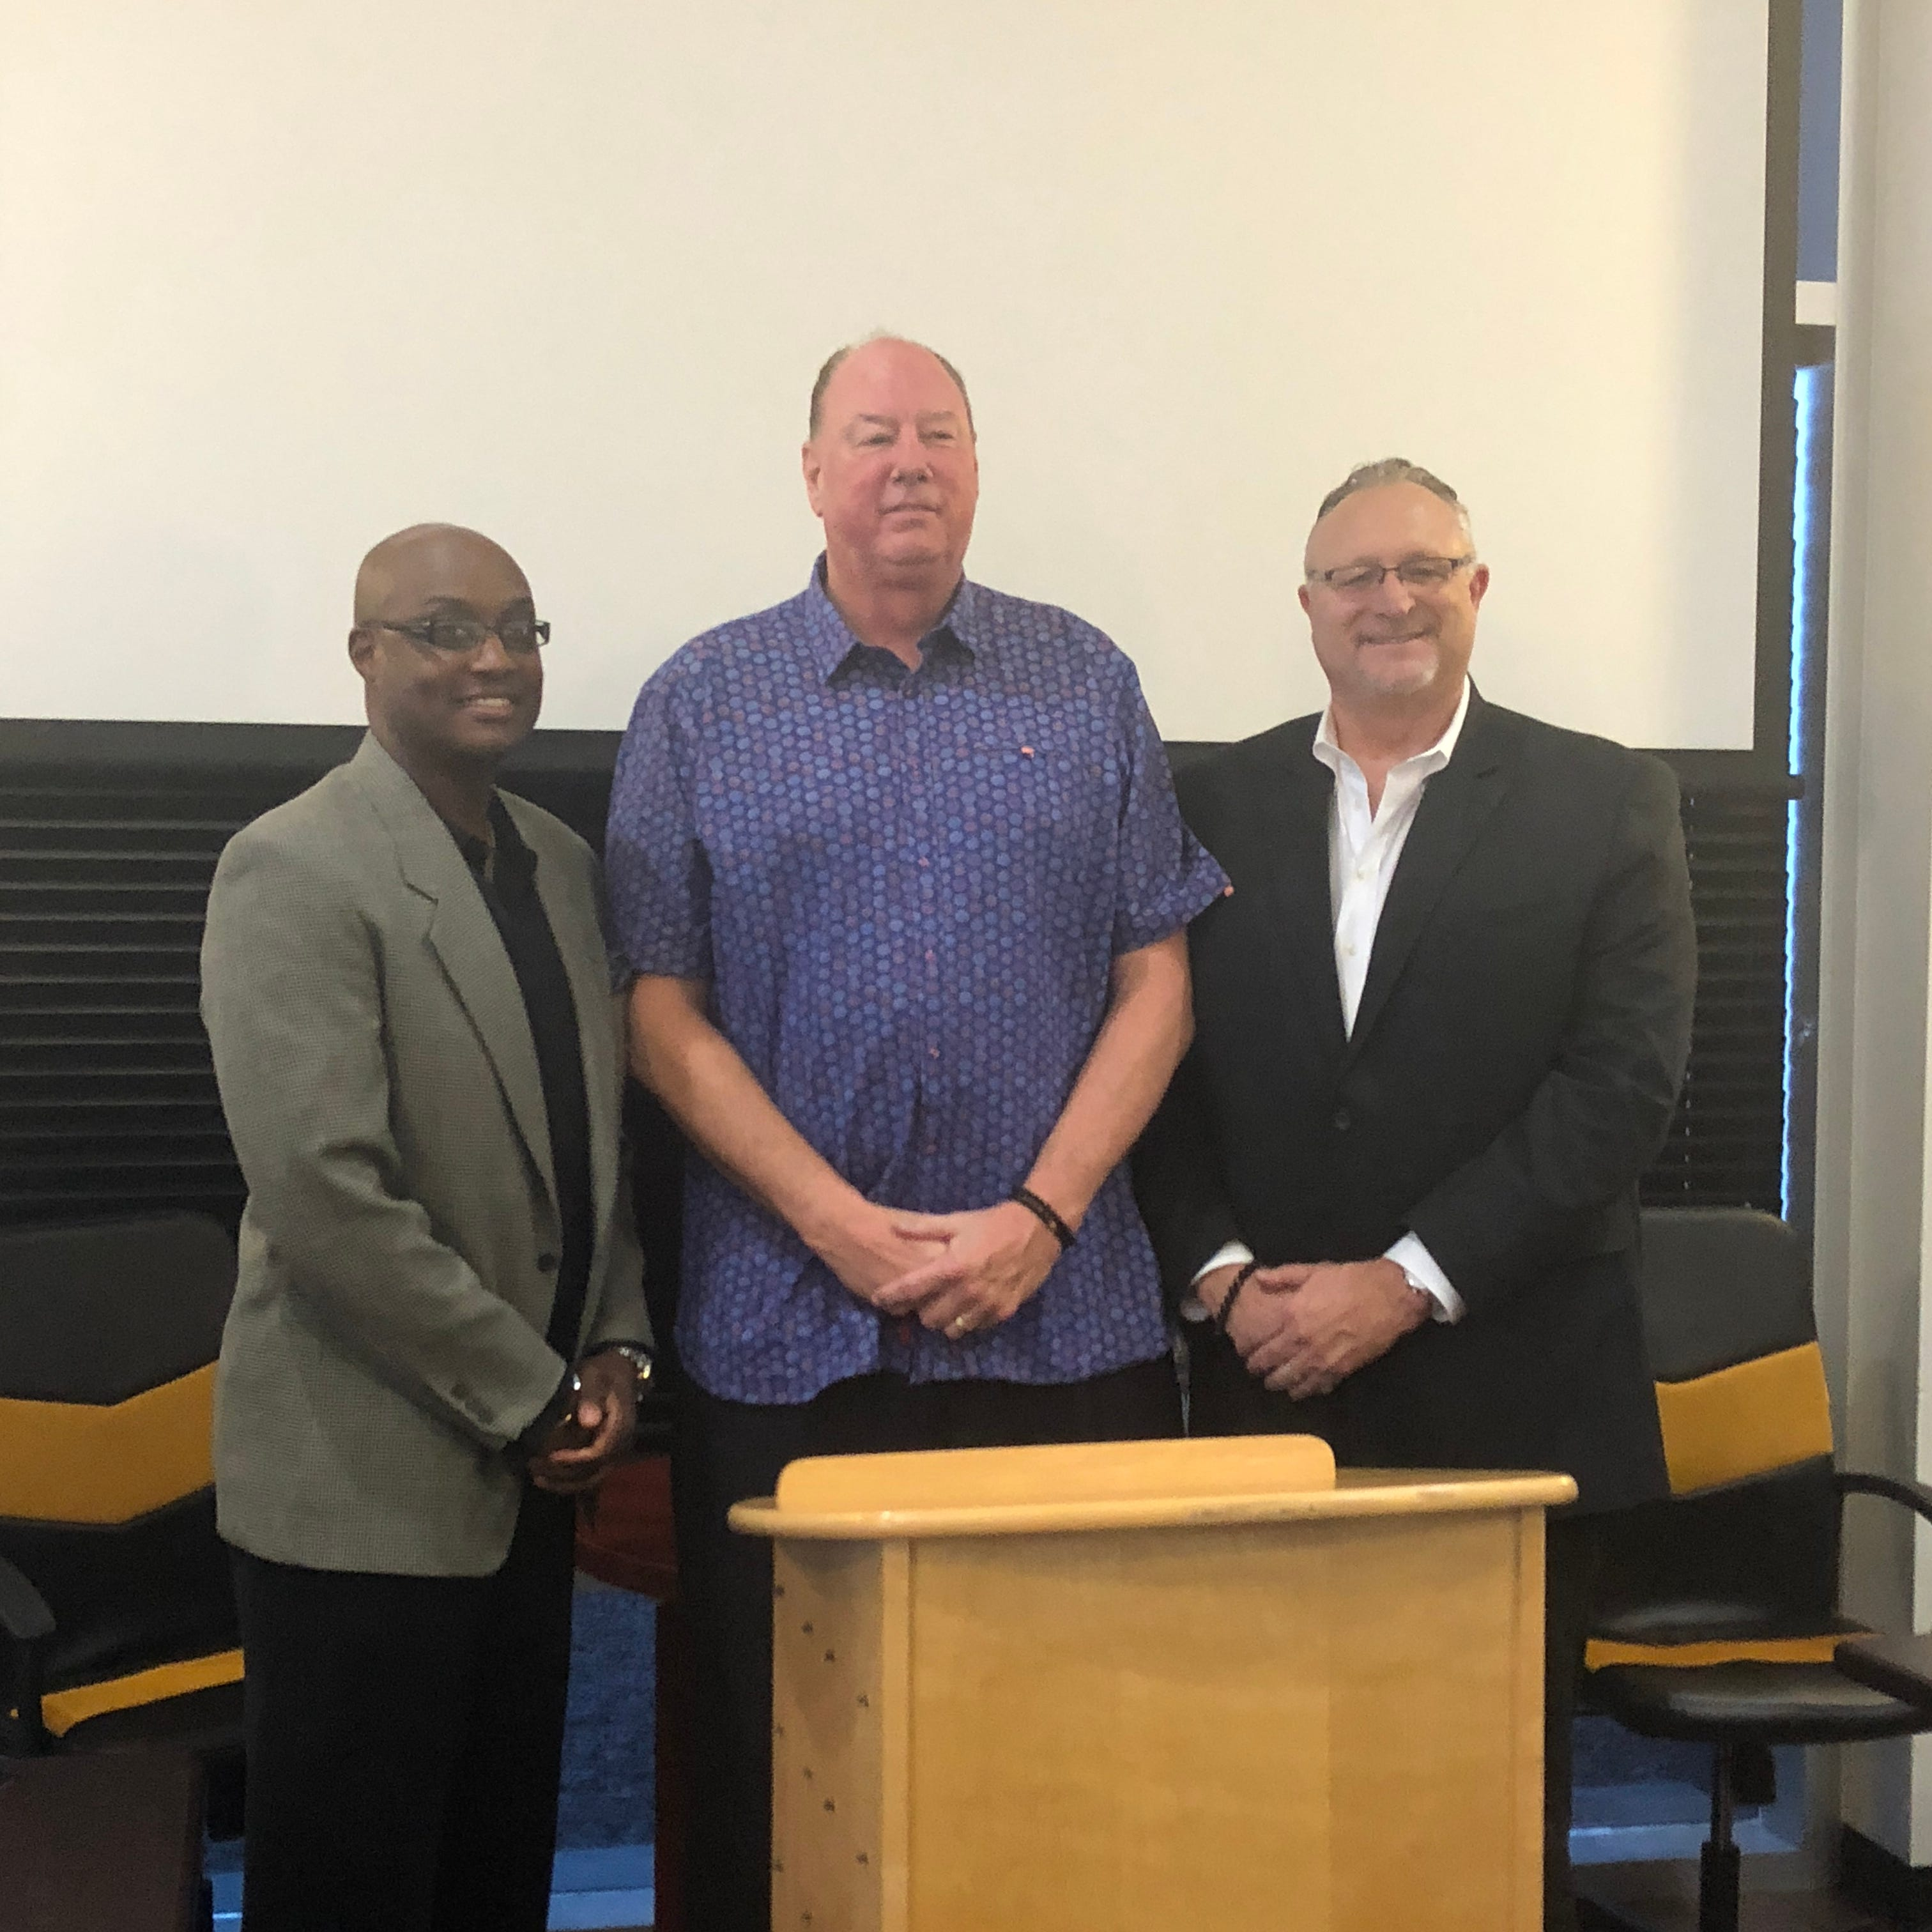 From left to right: Mesquite Desert Dogs head coach Carlnell Wiley, league commissioner Paul Mokeski and league president Dave Magley joined together to hold a press conference about organizational changes to the Desert Dogs franchise.